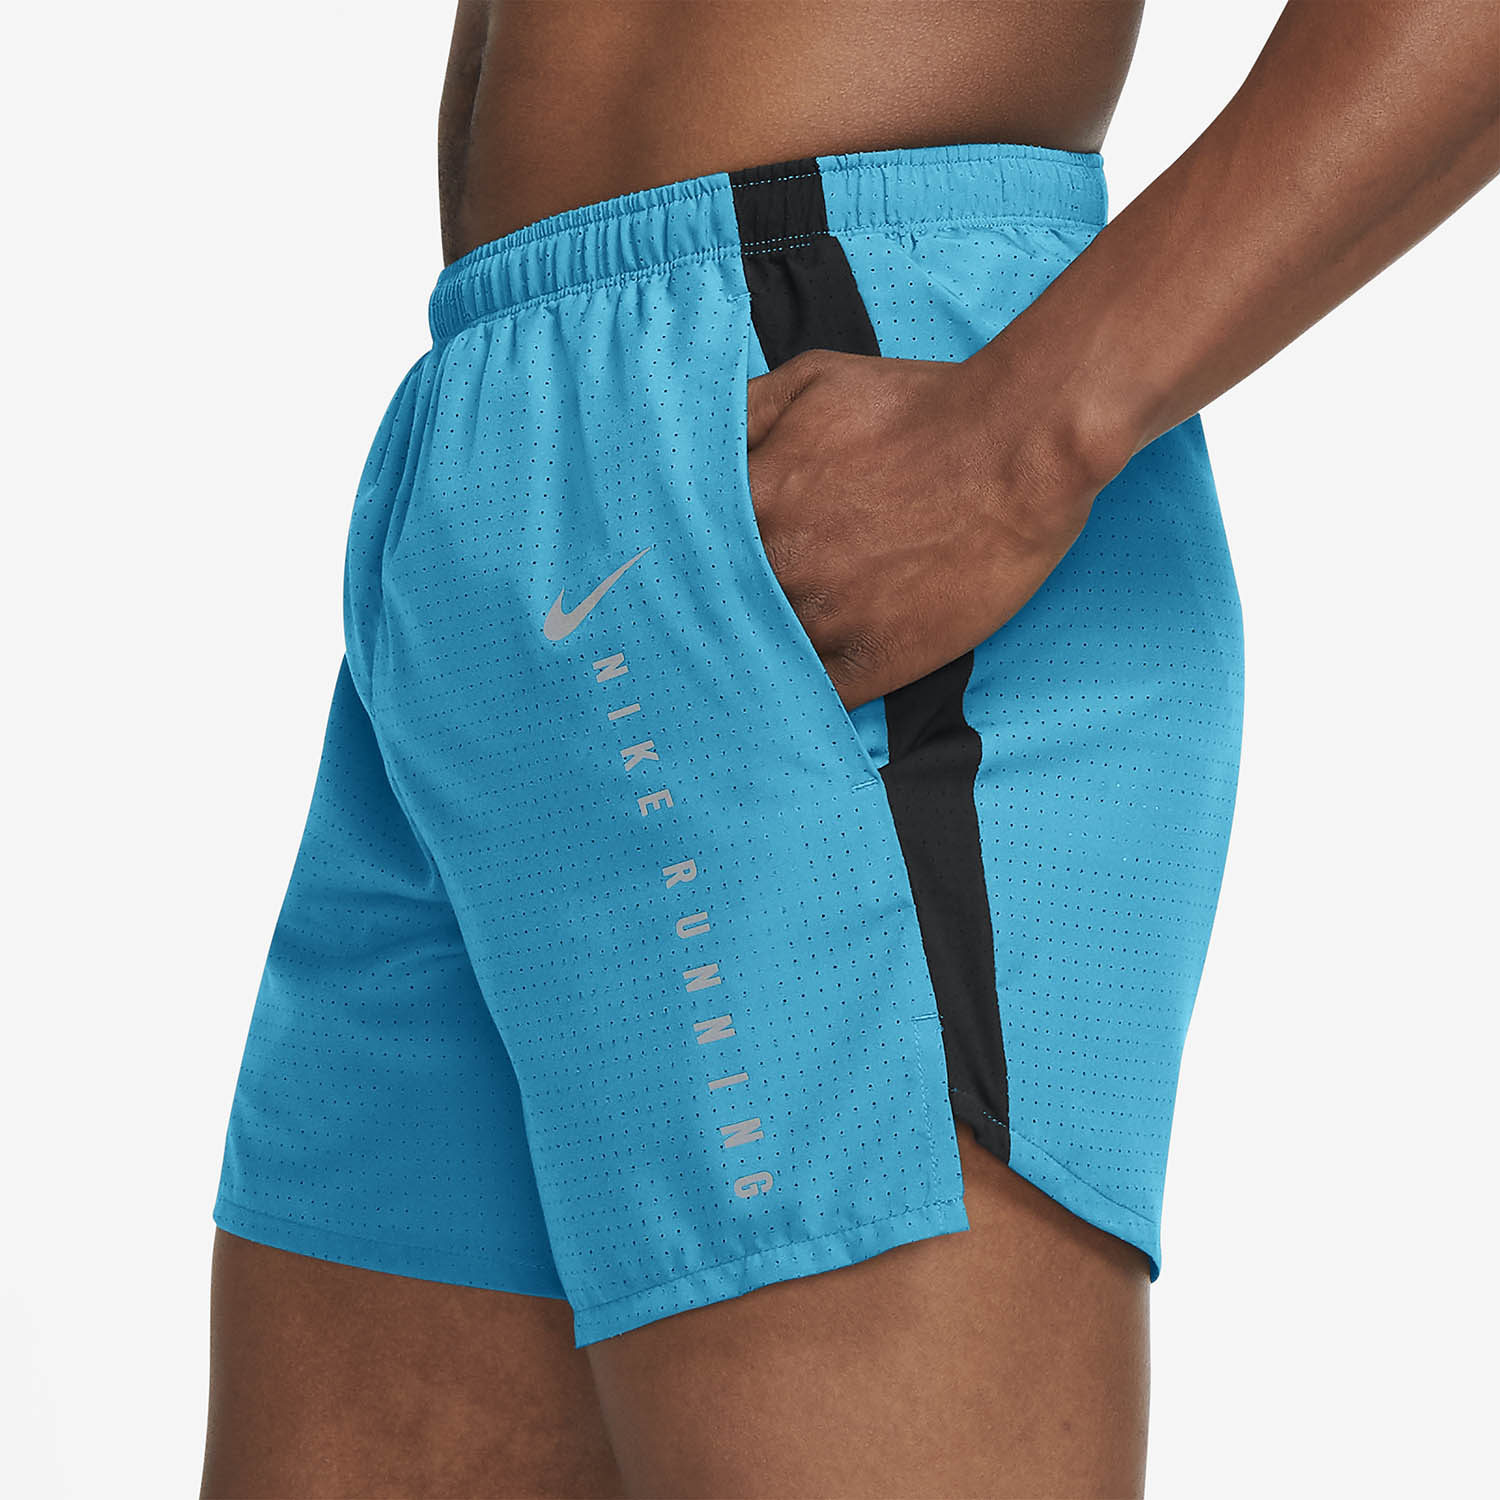 Nike Brief Lined 5in Shorts - Chlorine Blue/Black/Reflective Silver